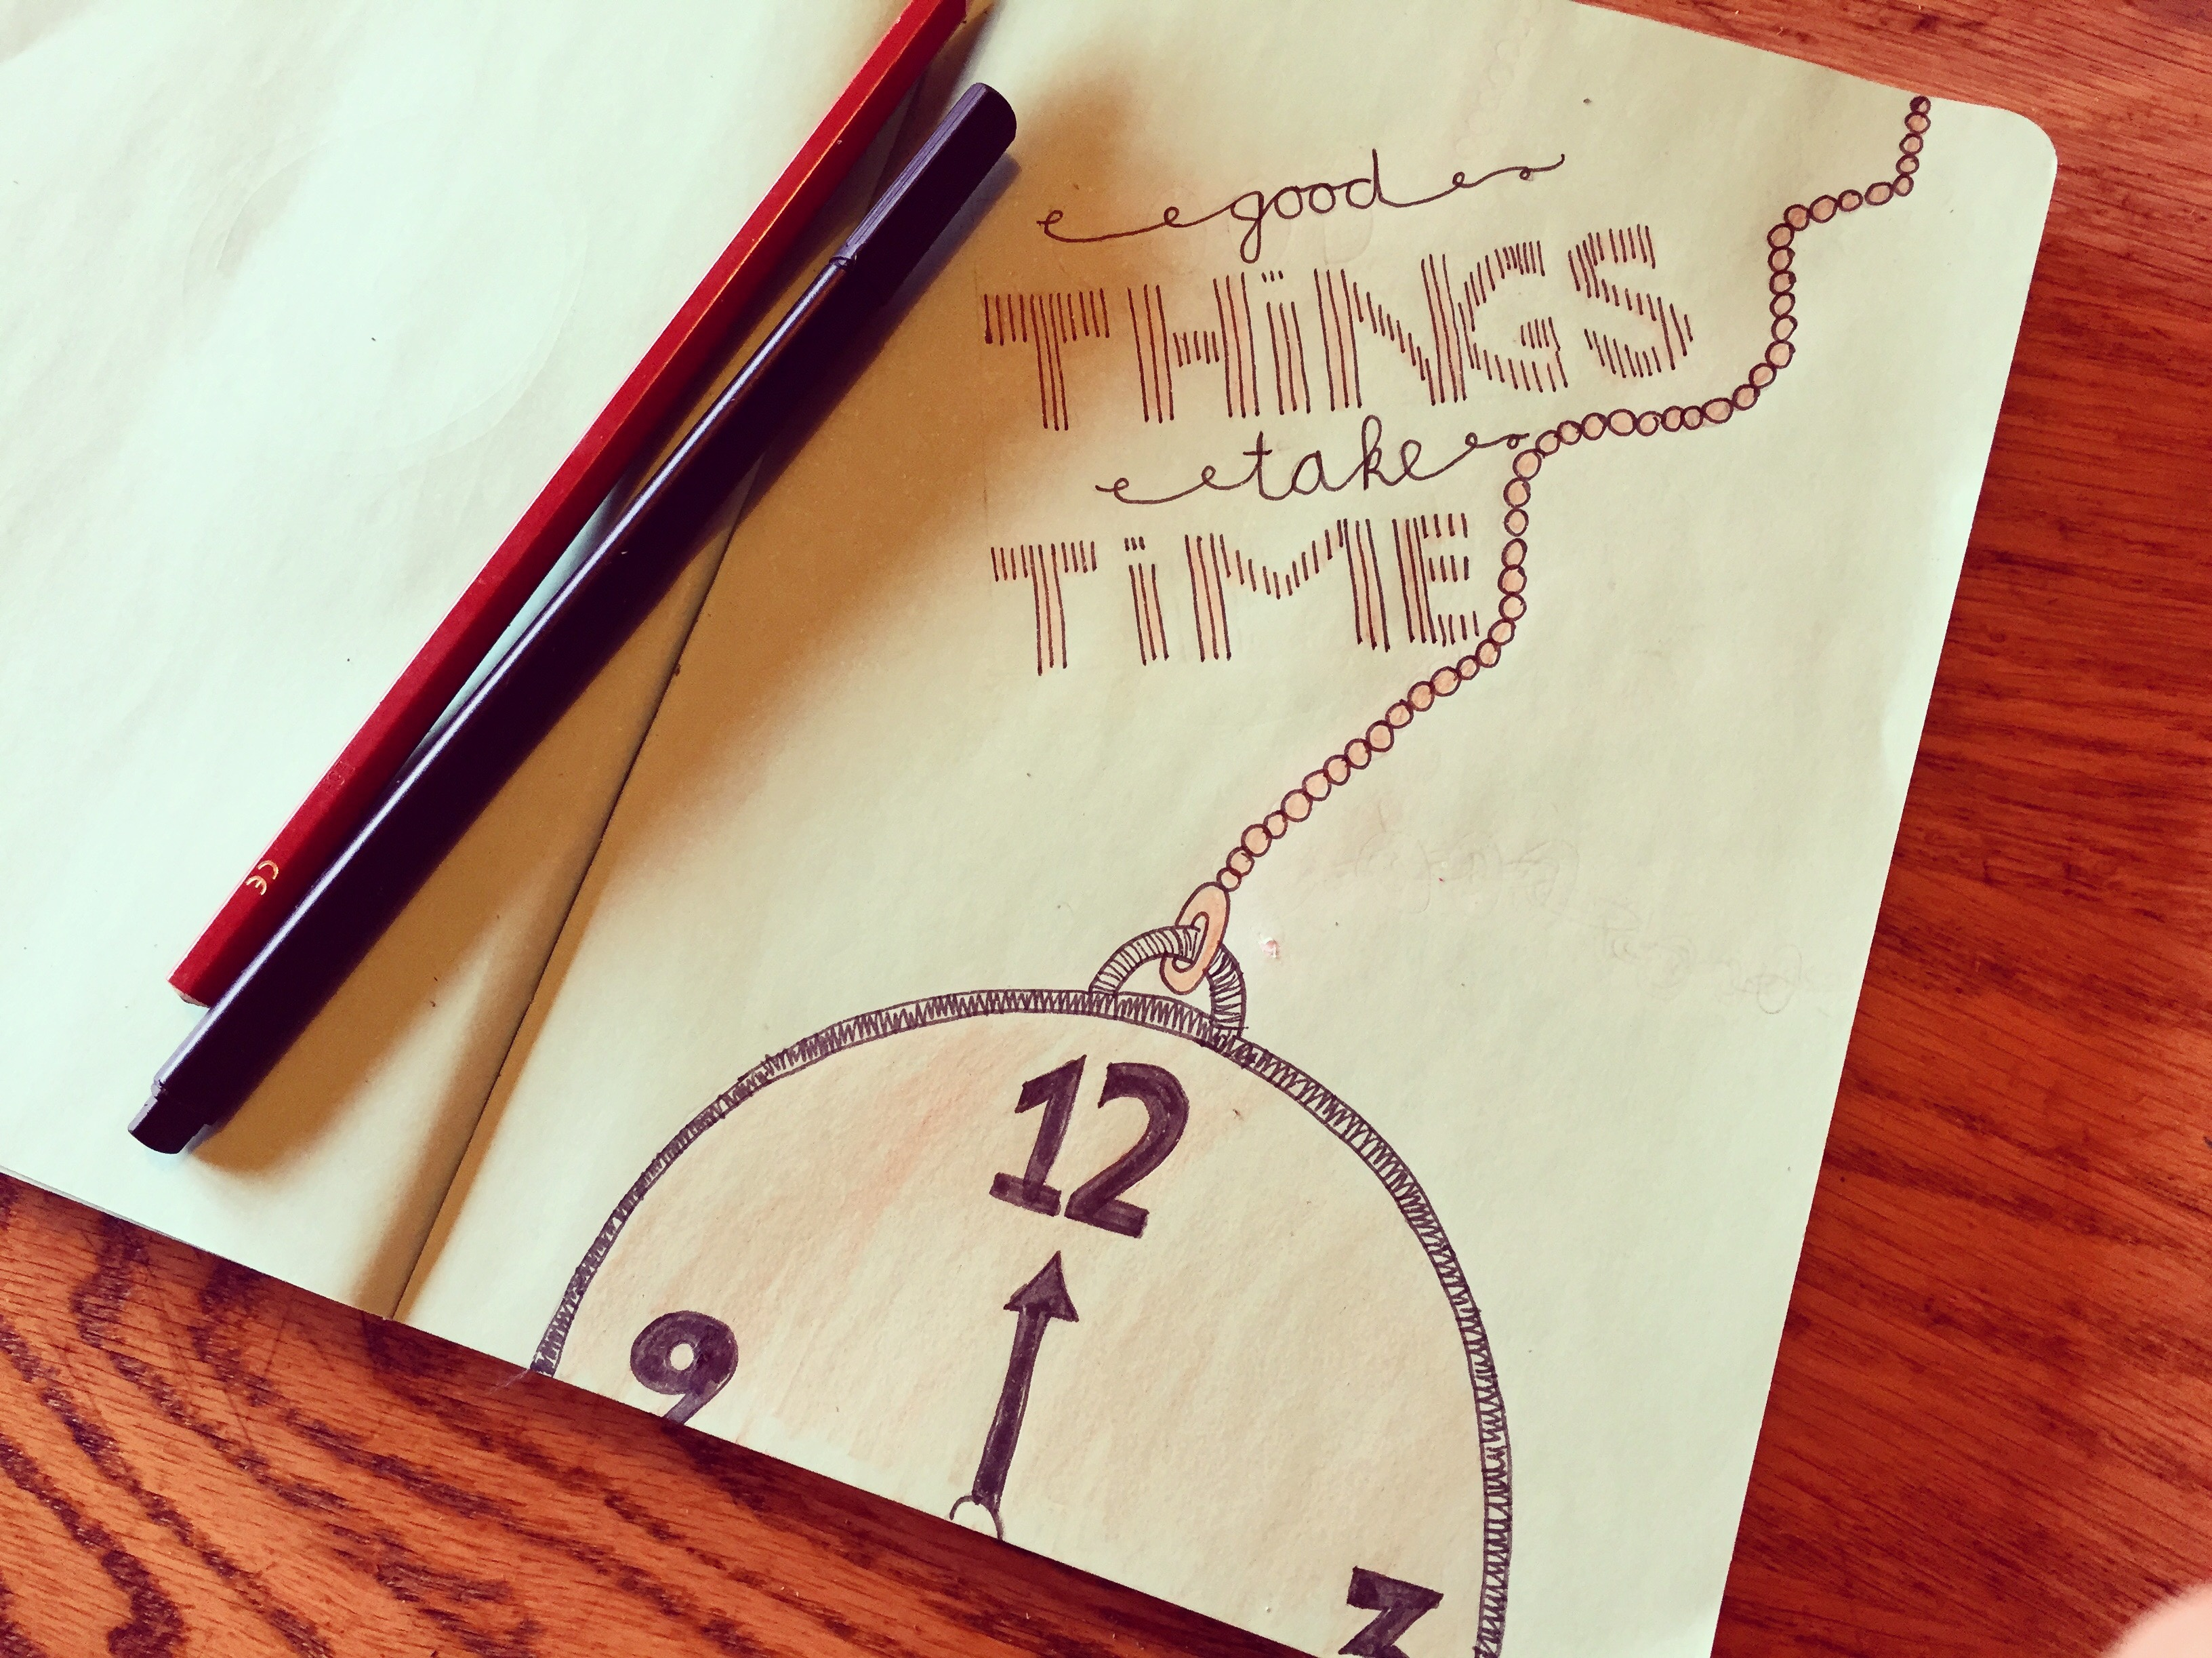 Good things take time. Hier teken ik echt nog